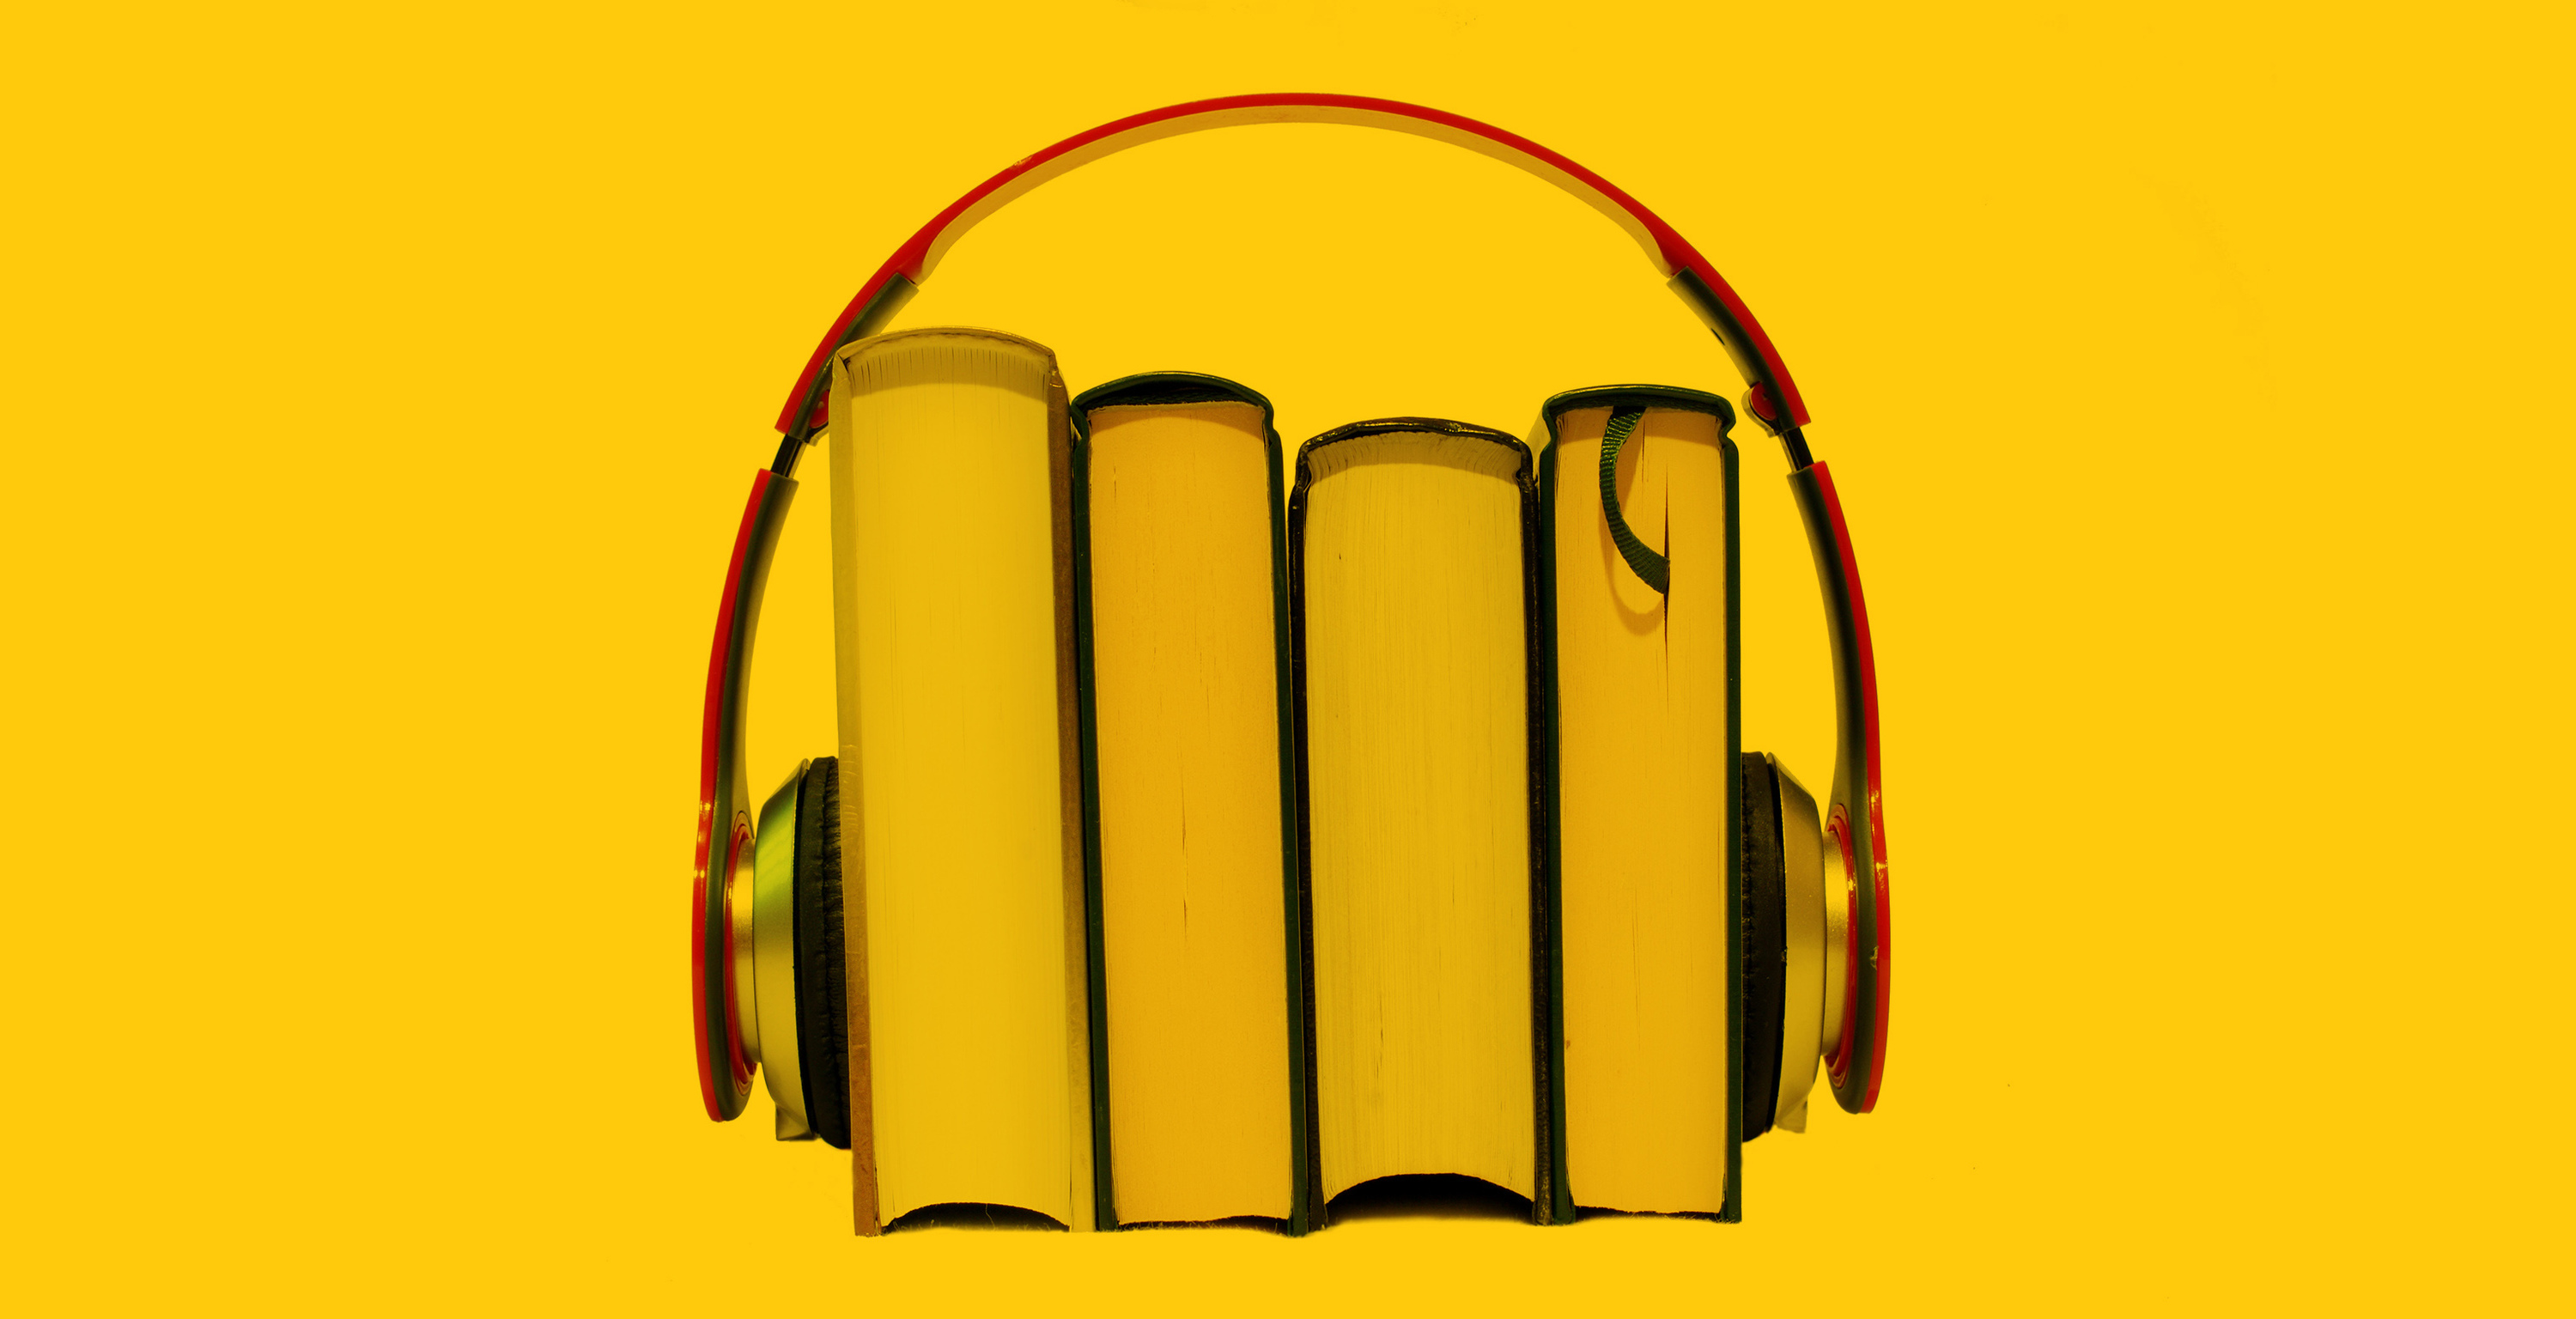 Audiobooks: books and headphones